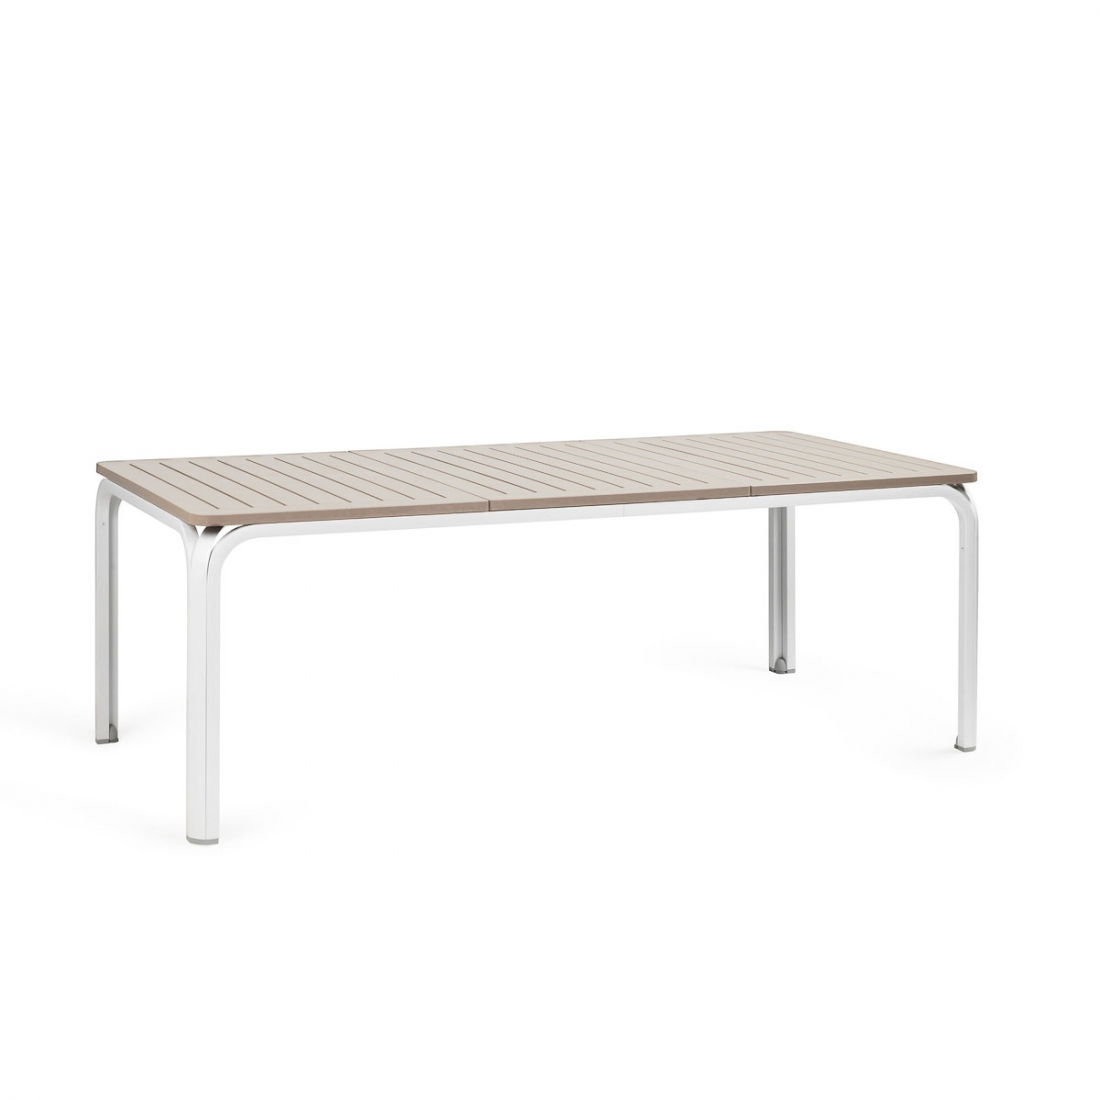 Table extensible nardi alloro 210 280 cm for Table extensible 350 cm